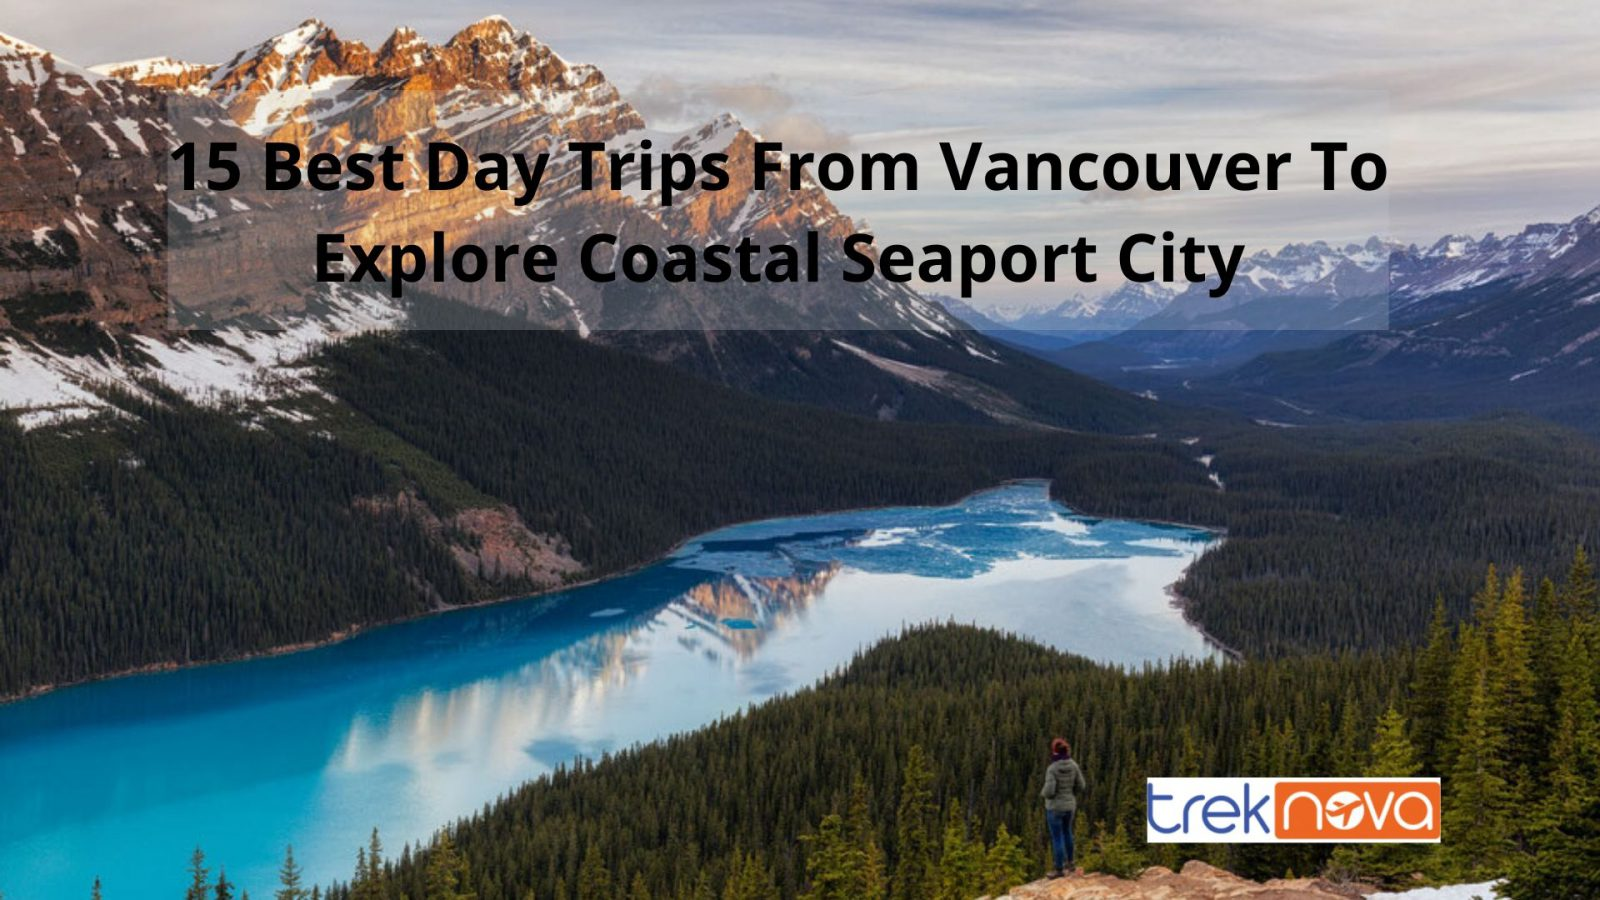 15 Best Day Trips From Vancouver To Explore Coastal Seaport City